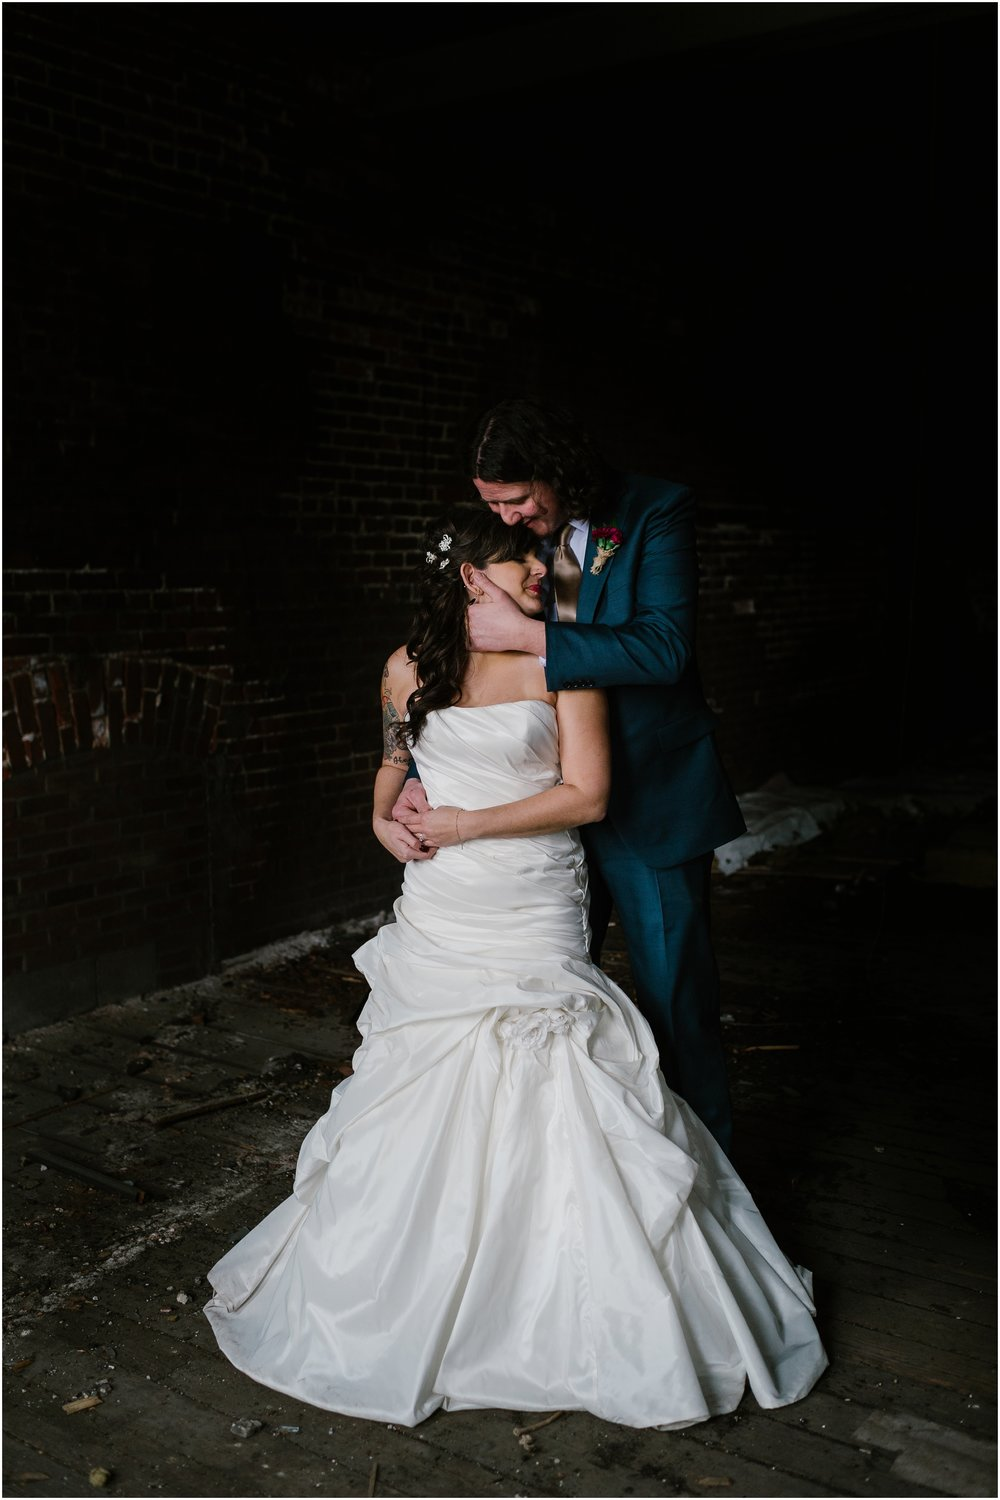 Rebecca_Shehorn_Photography_Indianapolis_Wedding_Photographer_9560.jpg